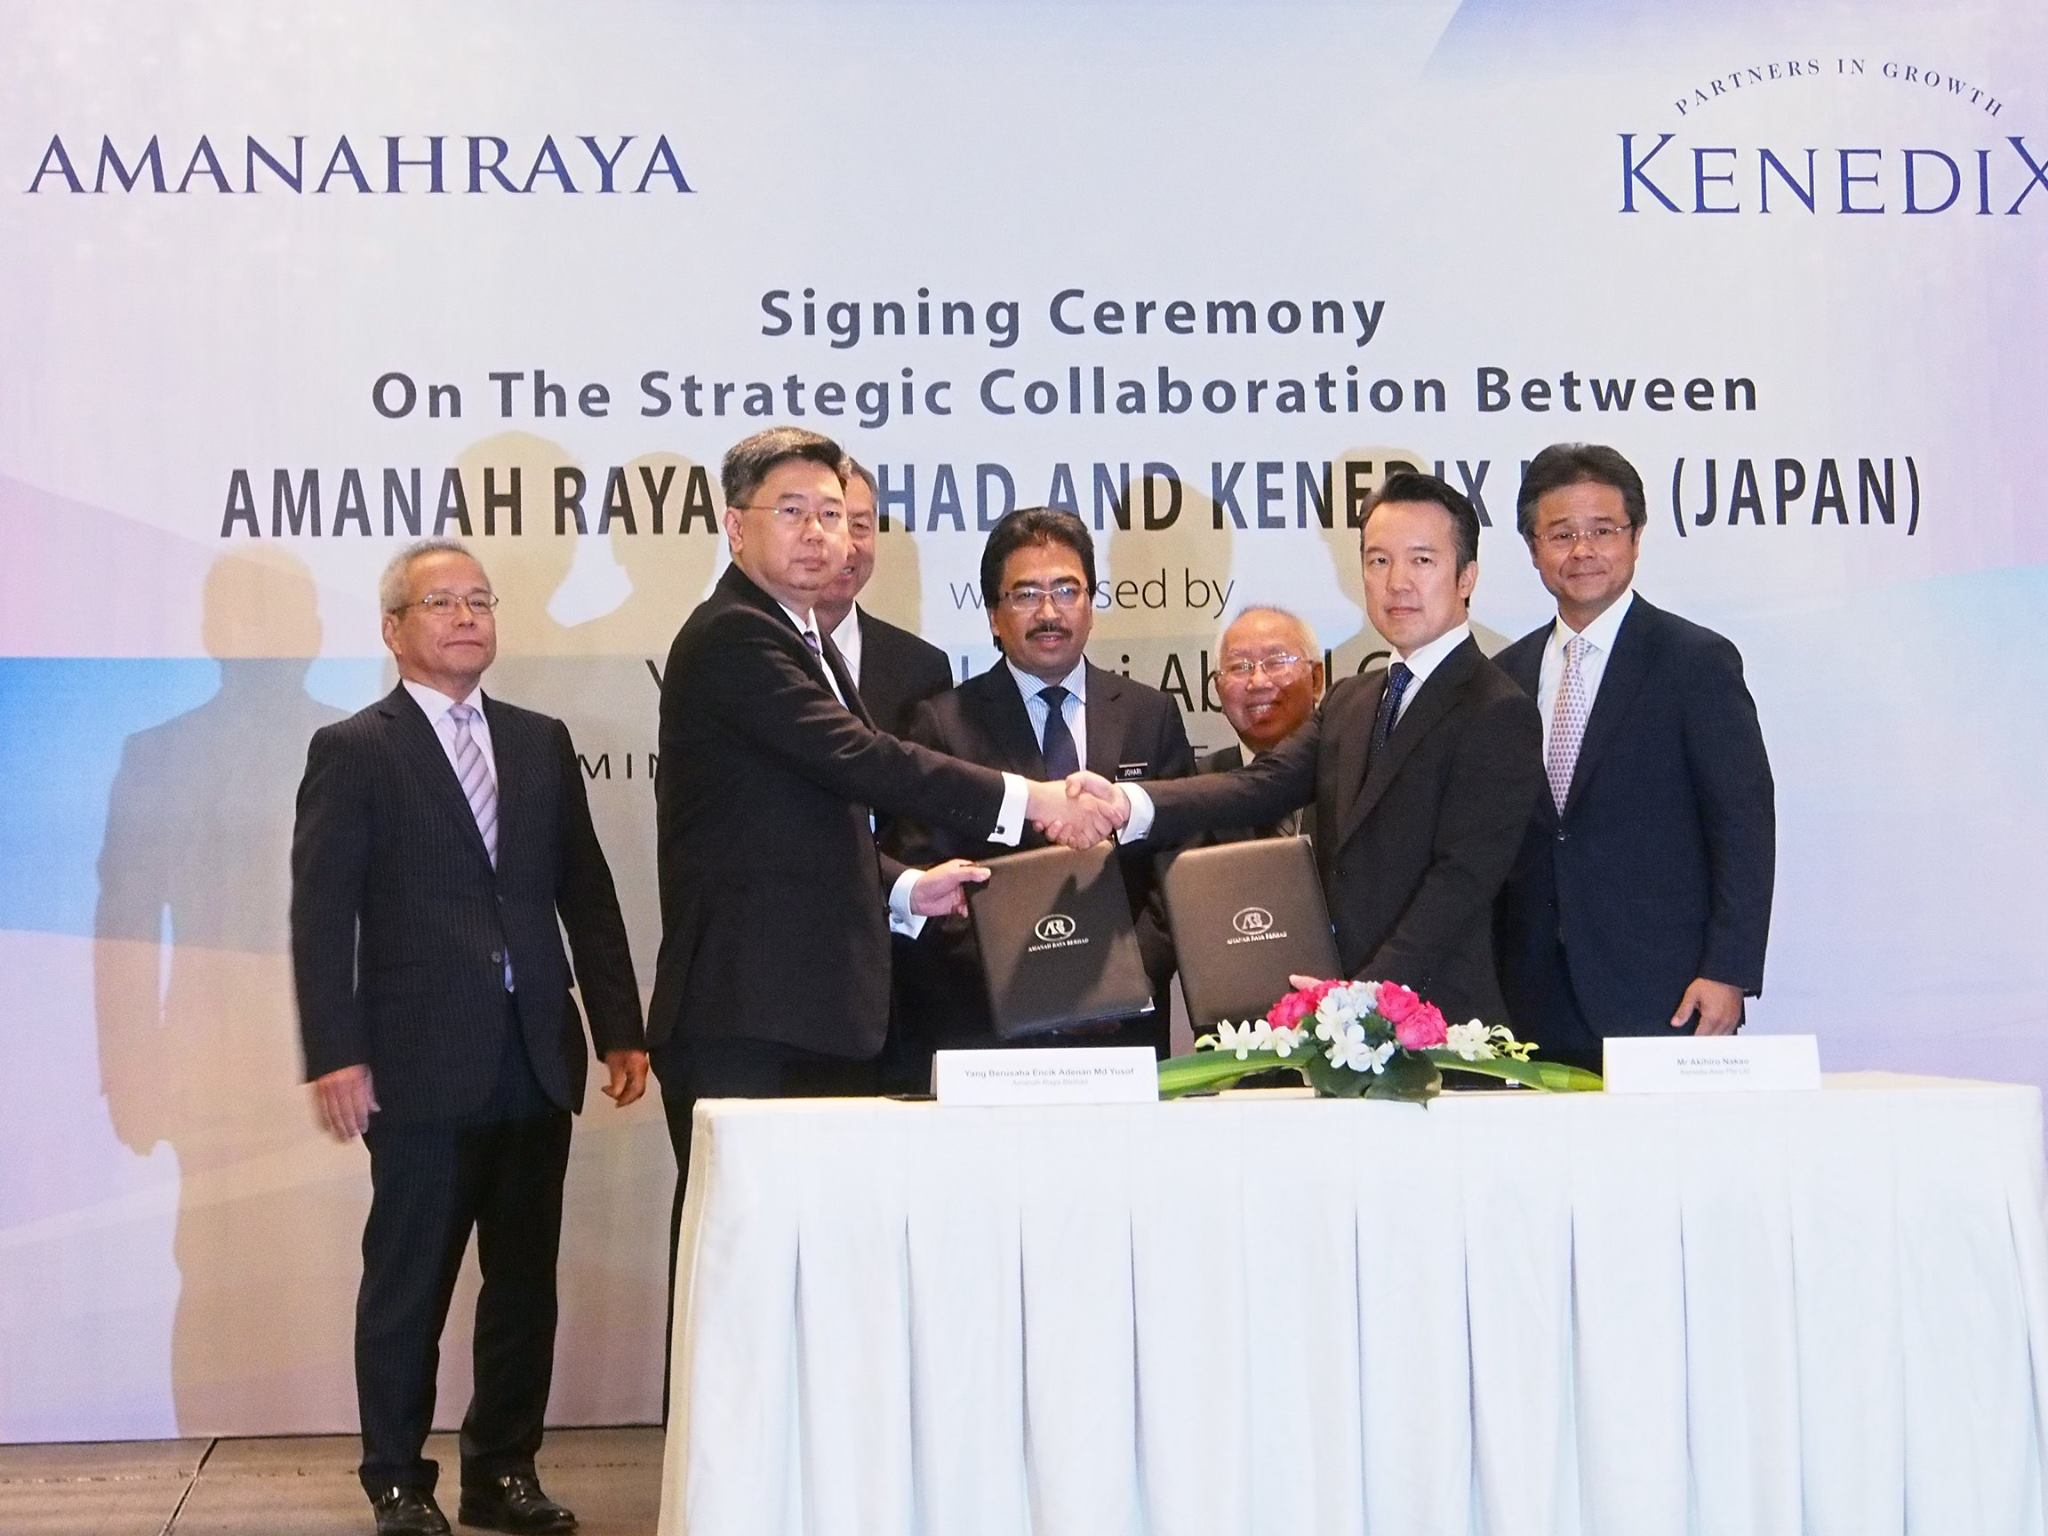 Signing Ceremony on The Strategic Collaboration between AmanahRaya Berhad and Kenedix Inc (JAPAN)